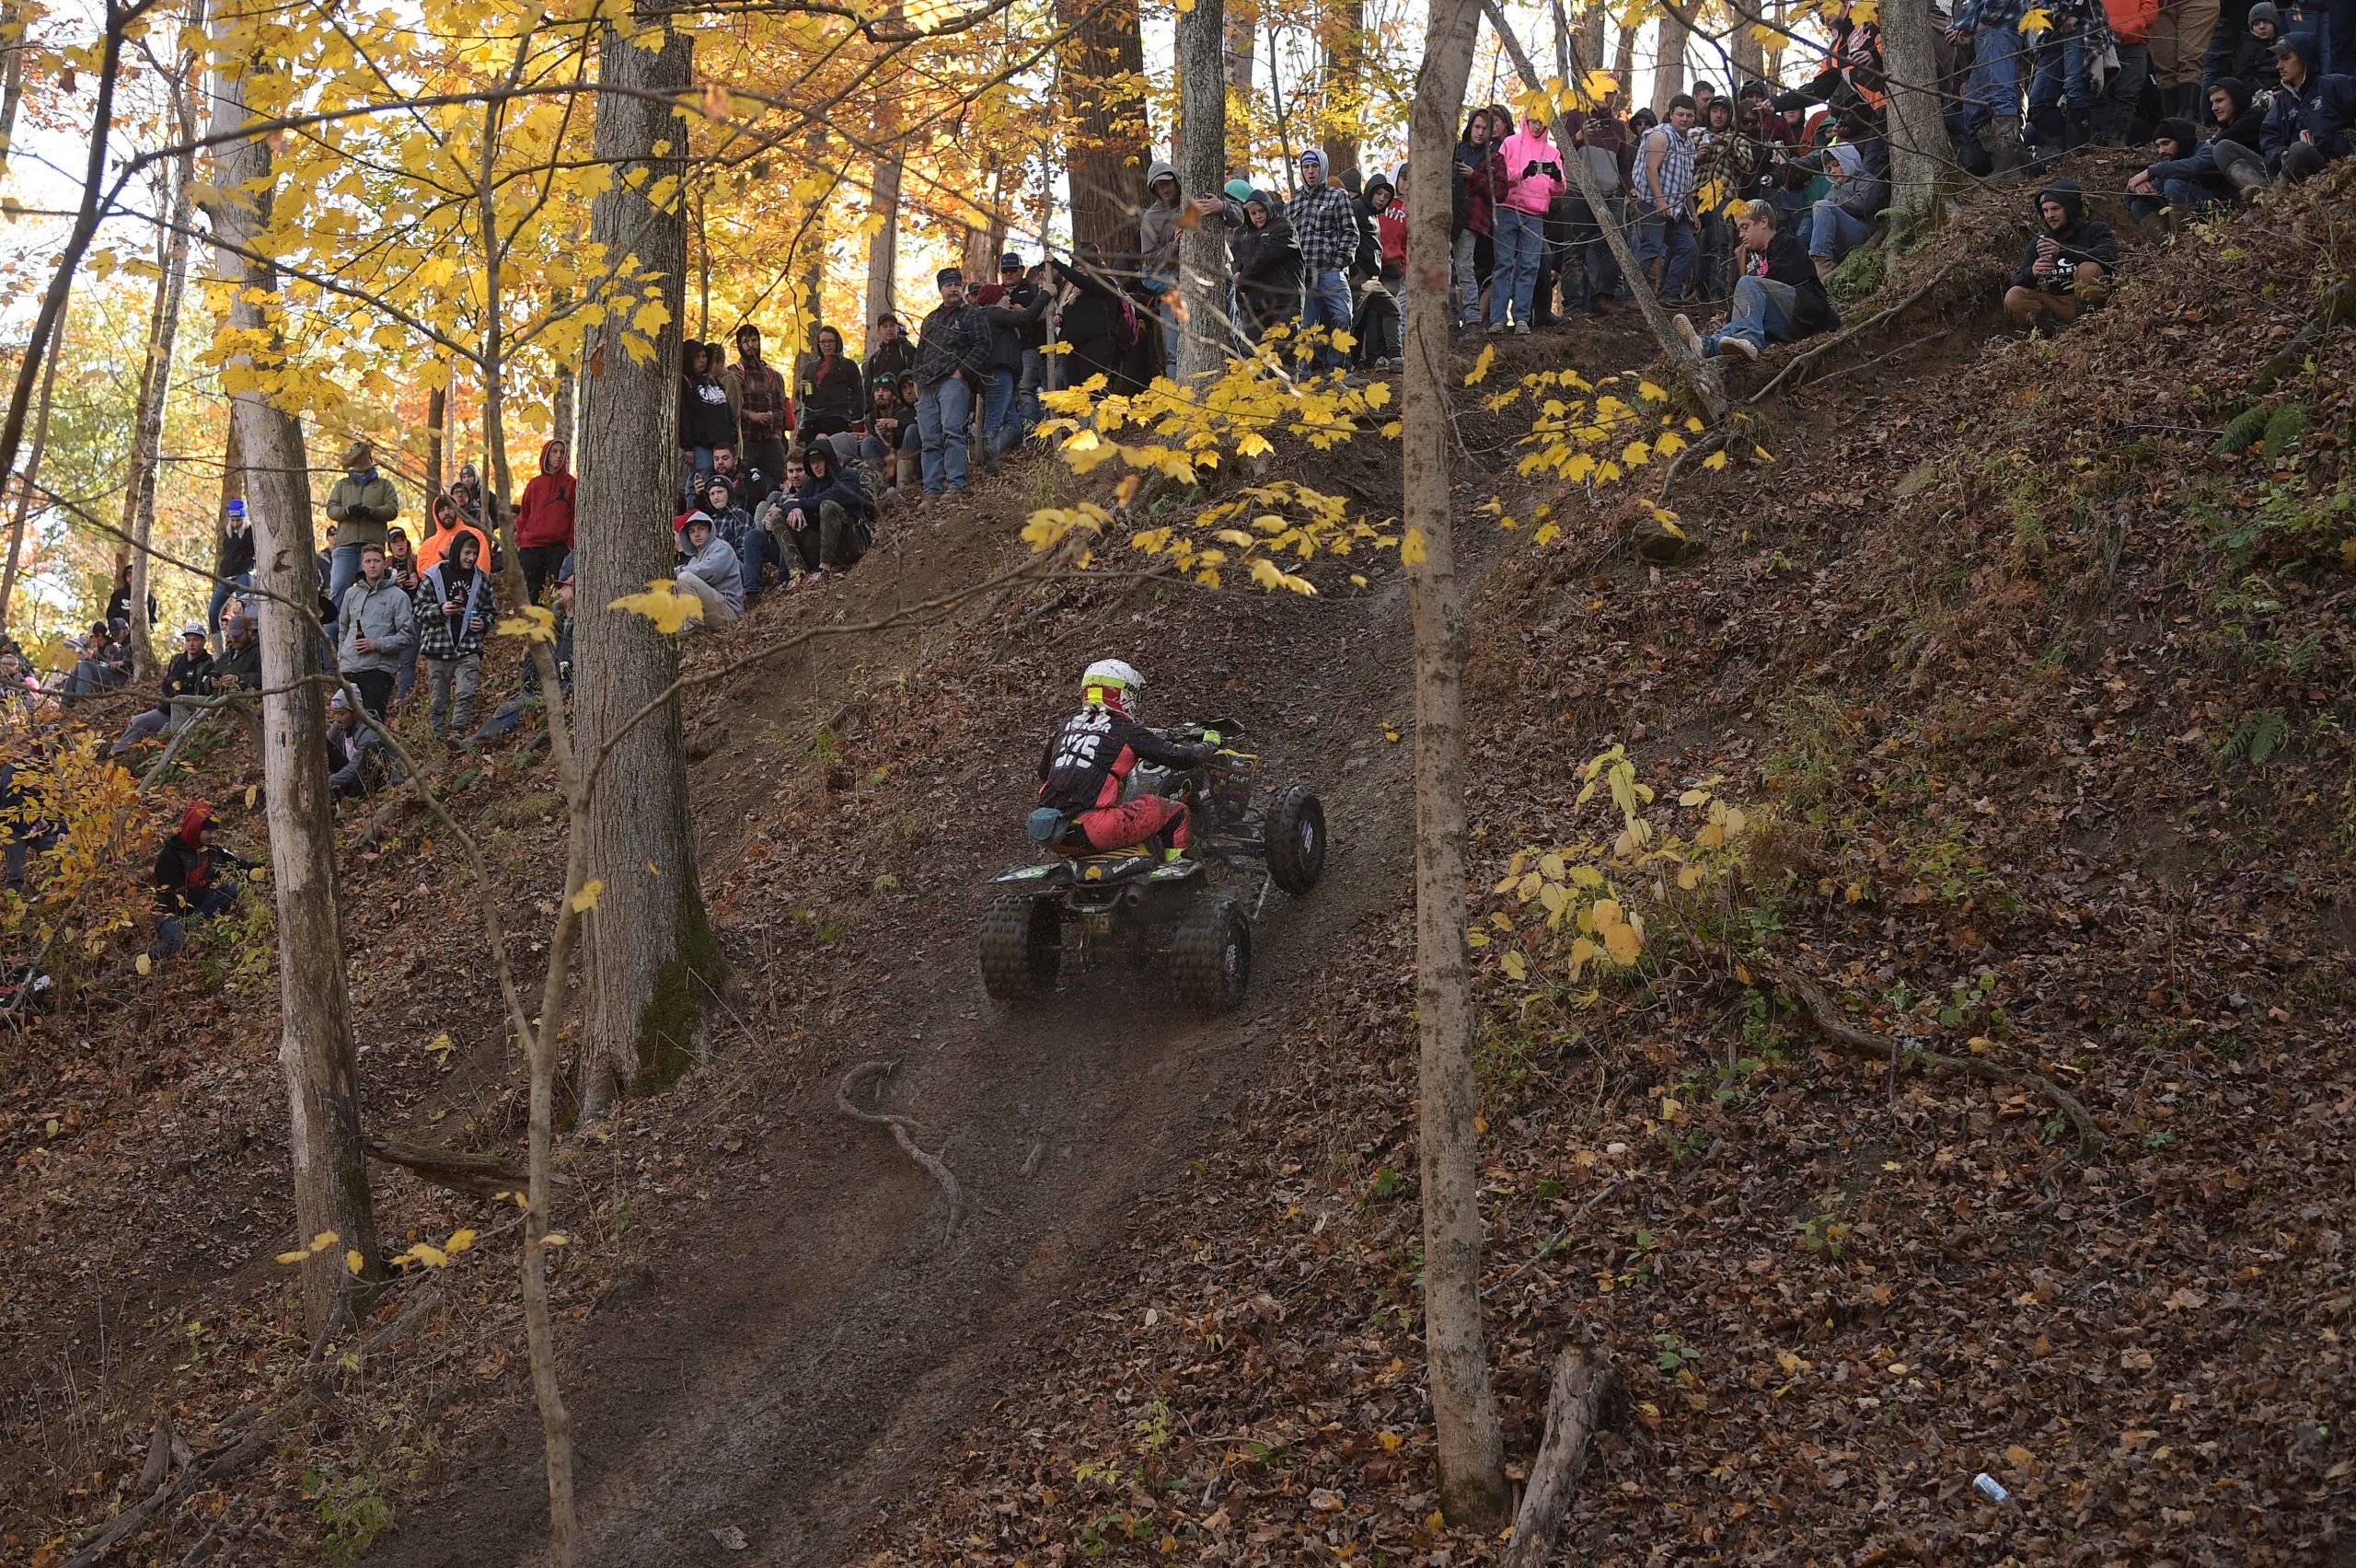 210401 The Ironman GNCC is one of the most anticipated events of the season